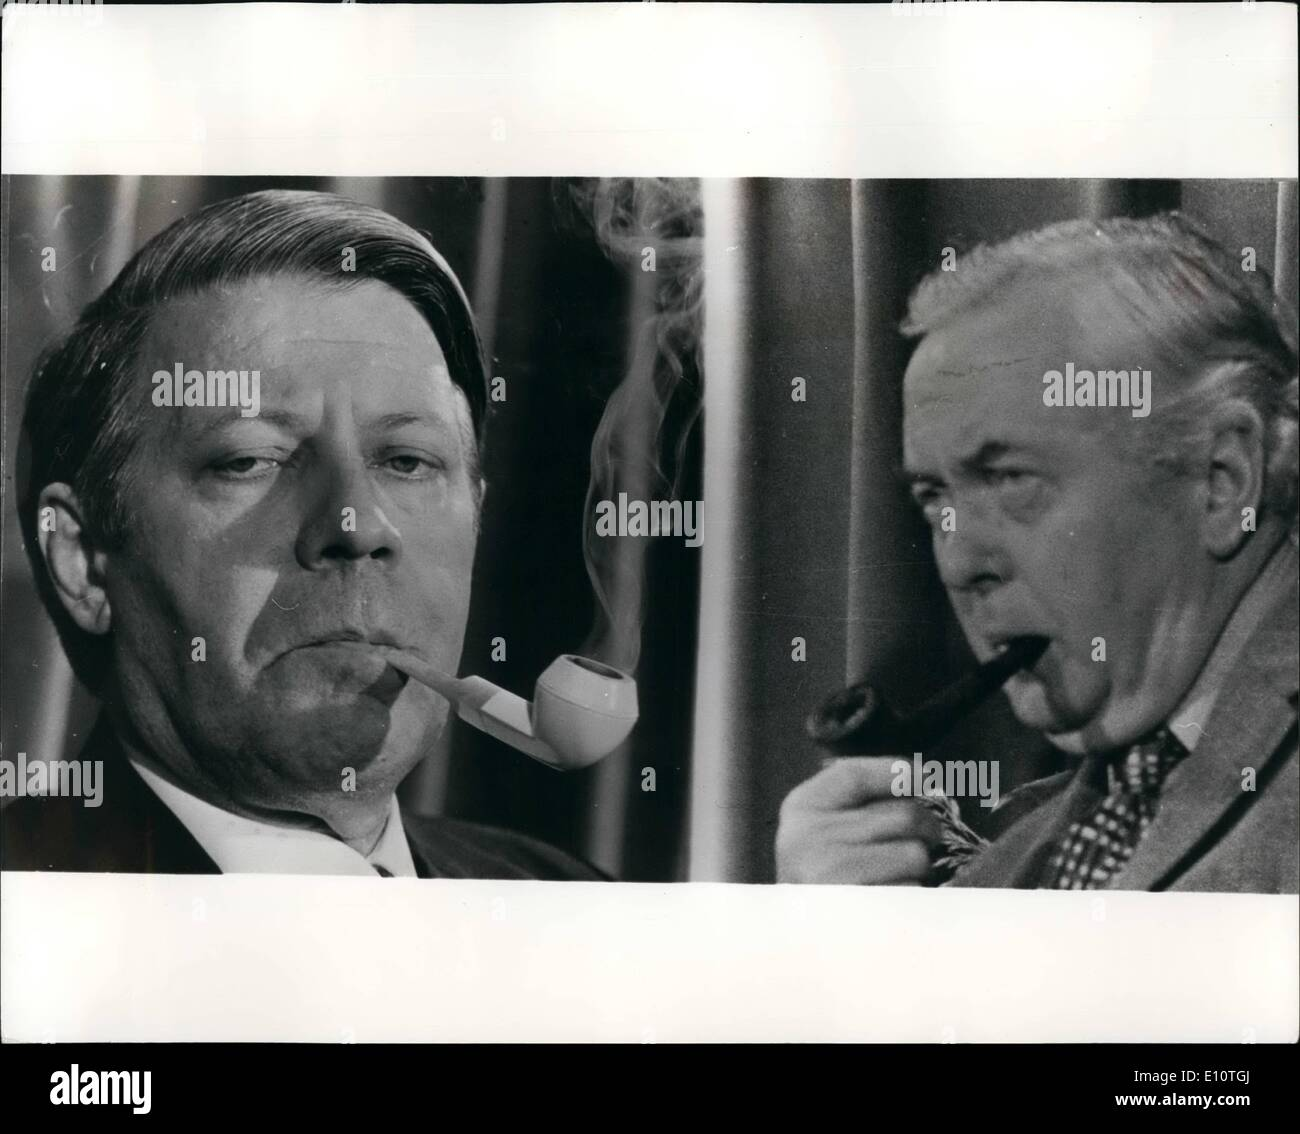 Feb. 02, 1974 - Pipe Smoking Leaders: Pipes were well to the fore in these two pictures, when Herr Heimut Schmidt, the West German Chancellor (left) was seen off by Britain's Prime Minister, Harold Wilson (right), when the Chancellor left for Brussel's yeterday after he had addressed the Labour Party Conference in London. - Stock Image